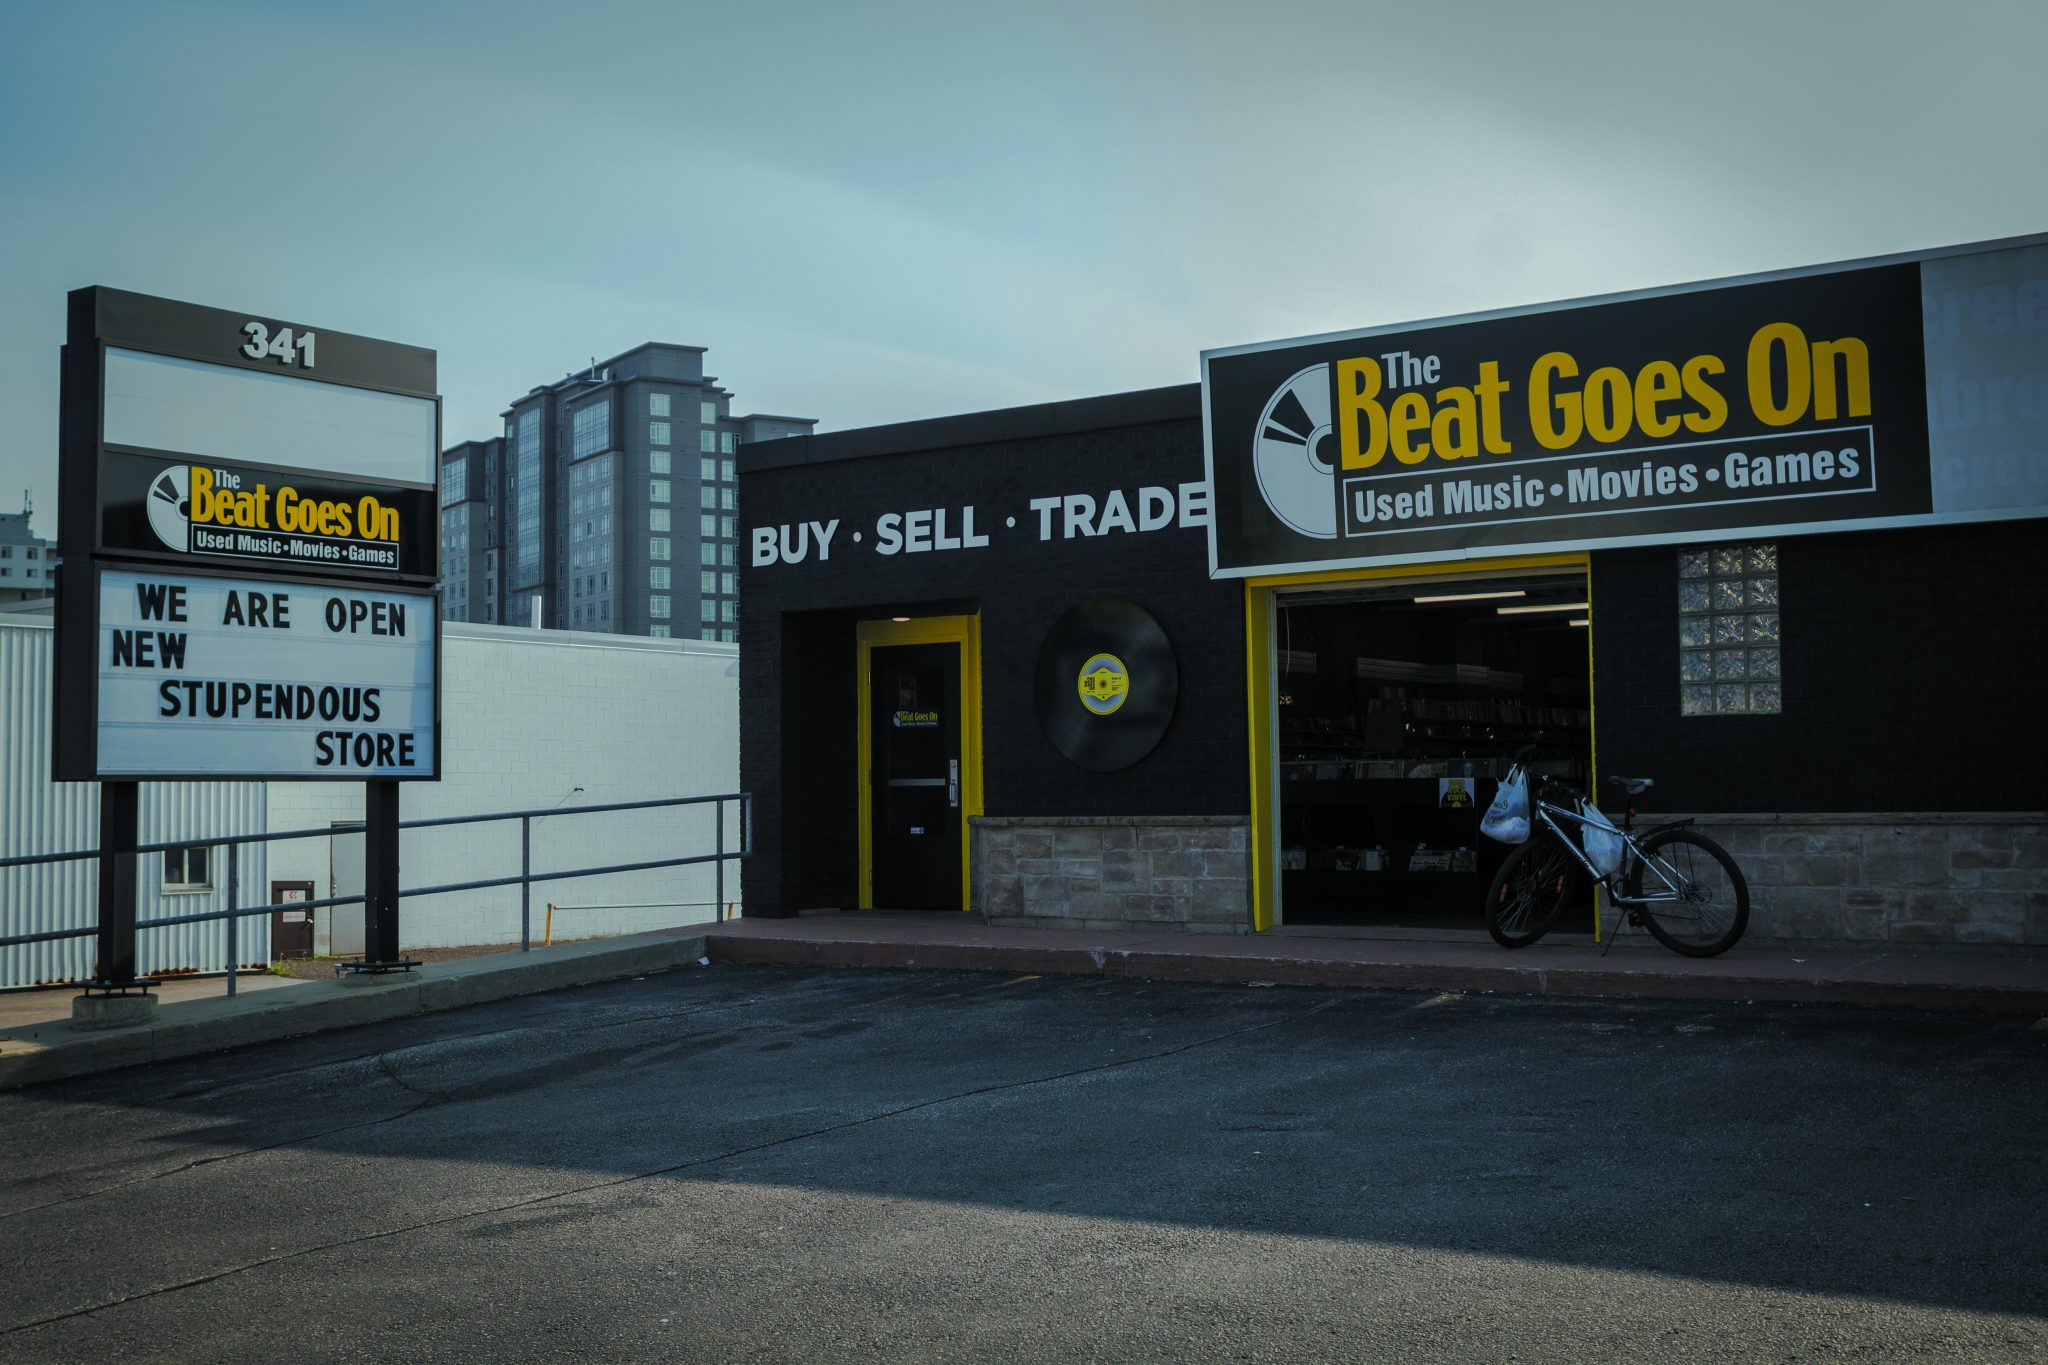 The Beat Goes On is expanding in KW region – The Cord